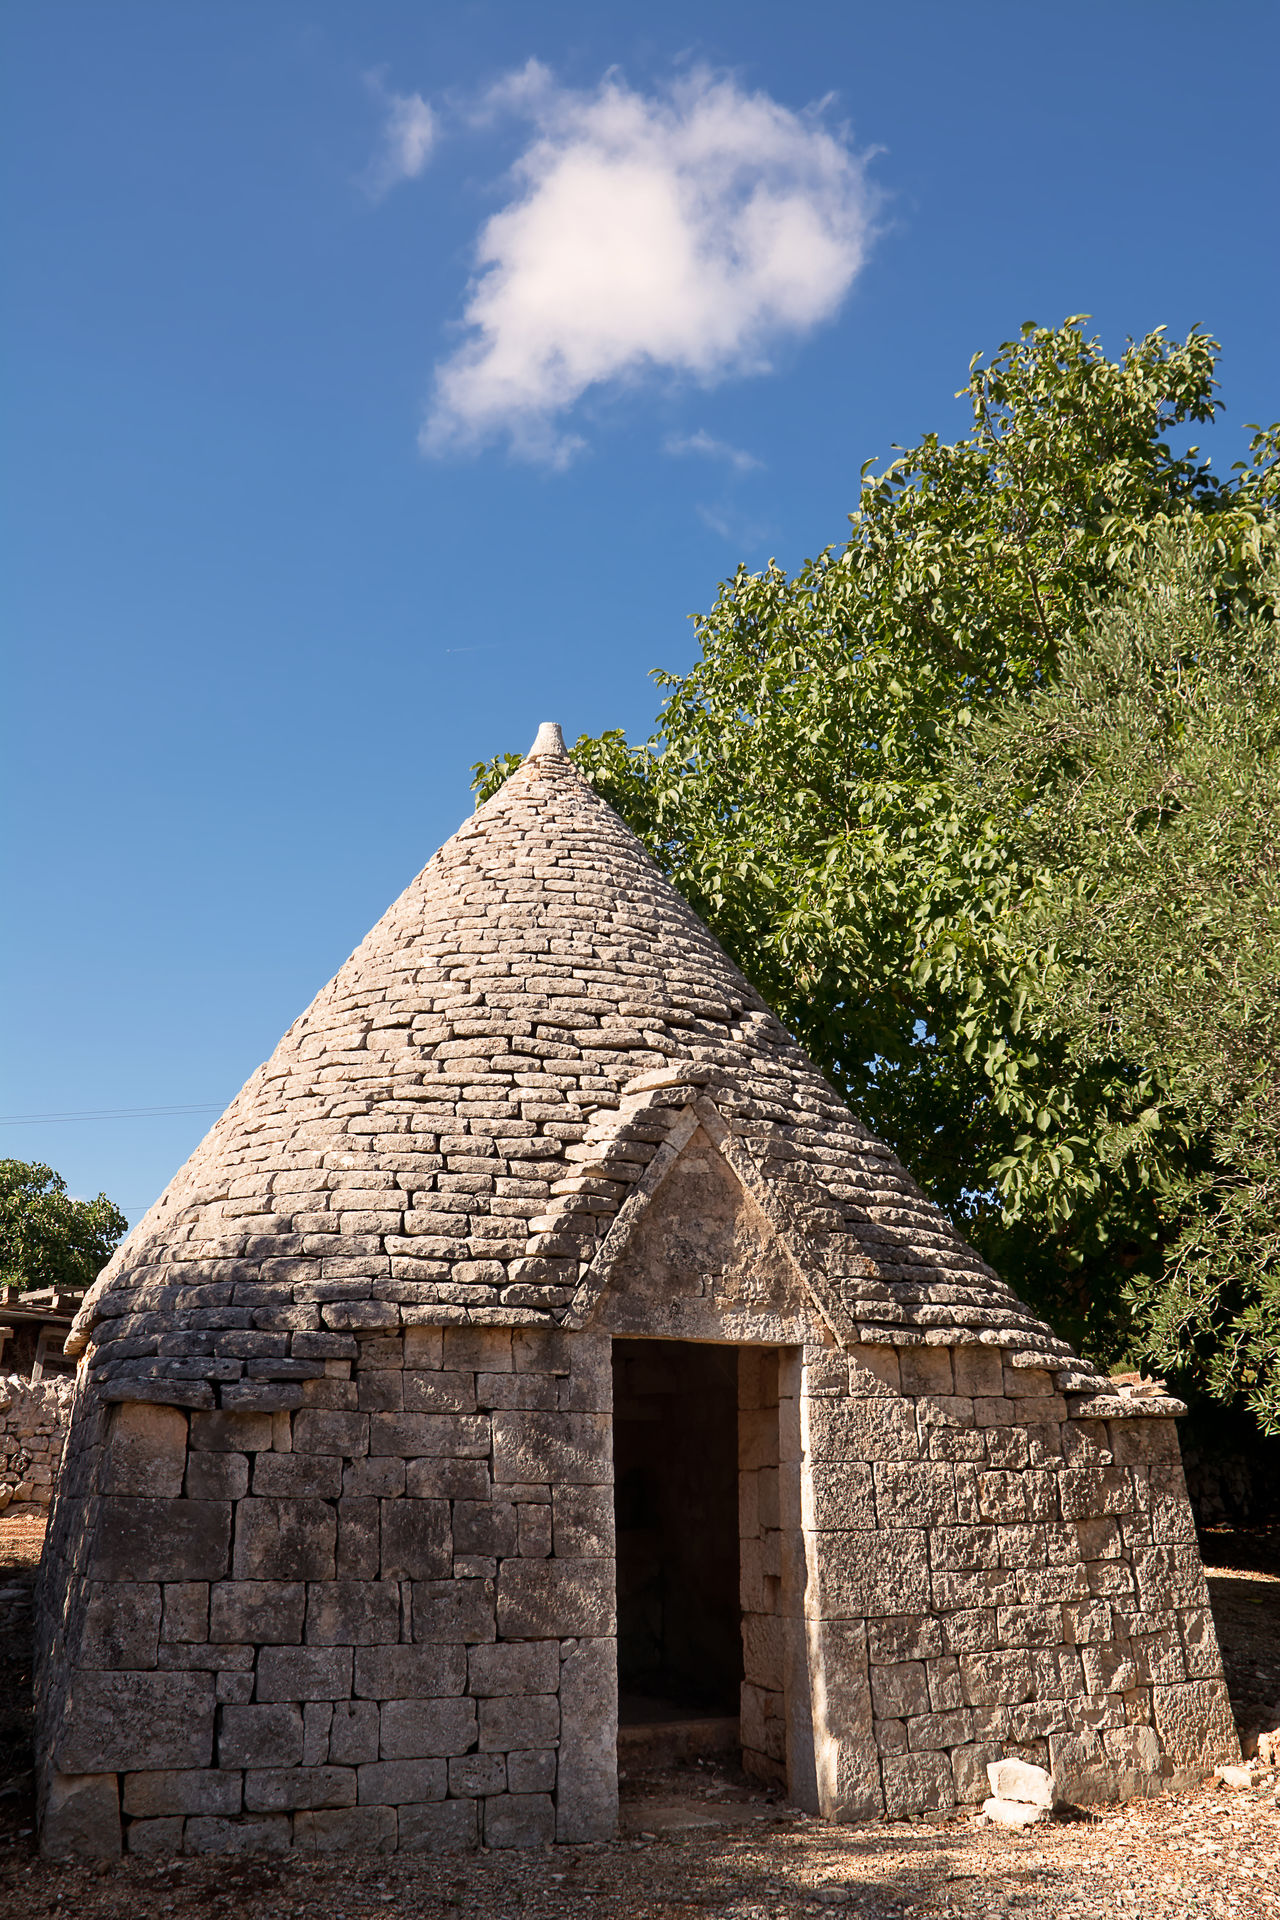 Trullo: typical habitation of apulia Alberobello Apúlia Bari Brindisi Cisternino House Italy Locorotondo Pinnacle Puglia Rural Stone Trullo